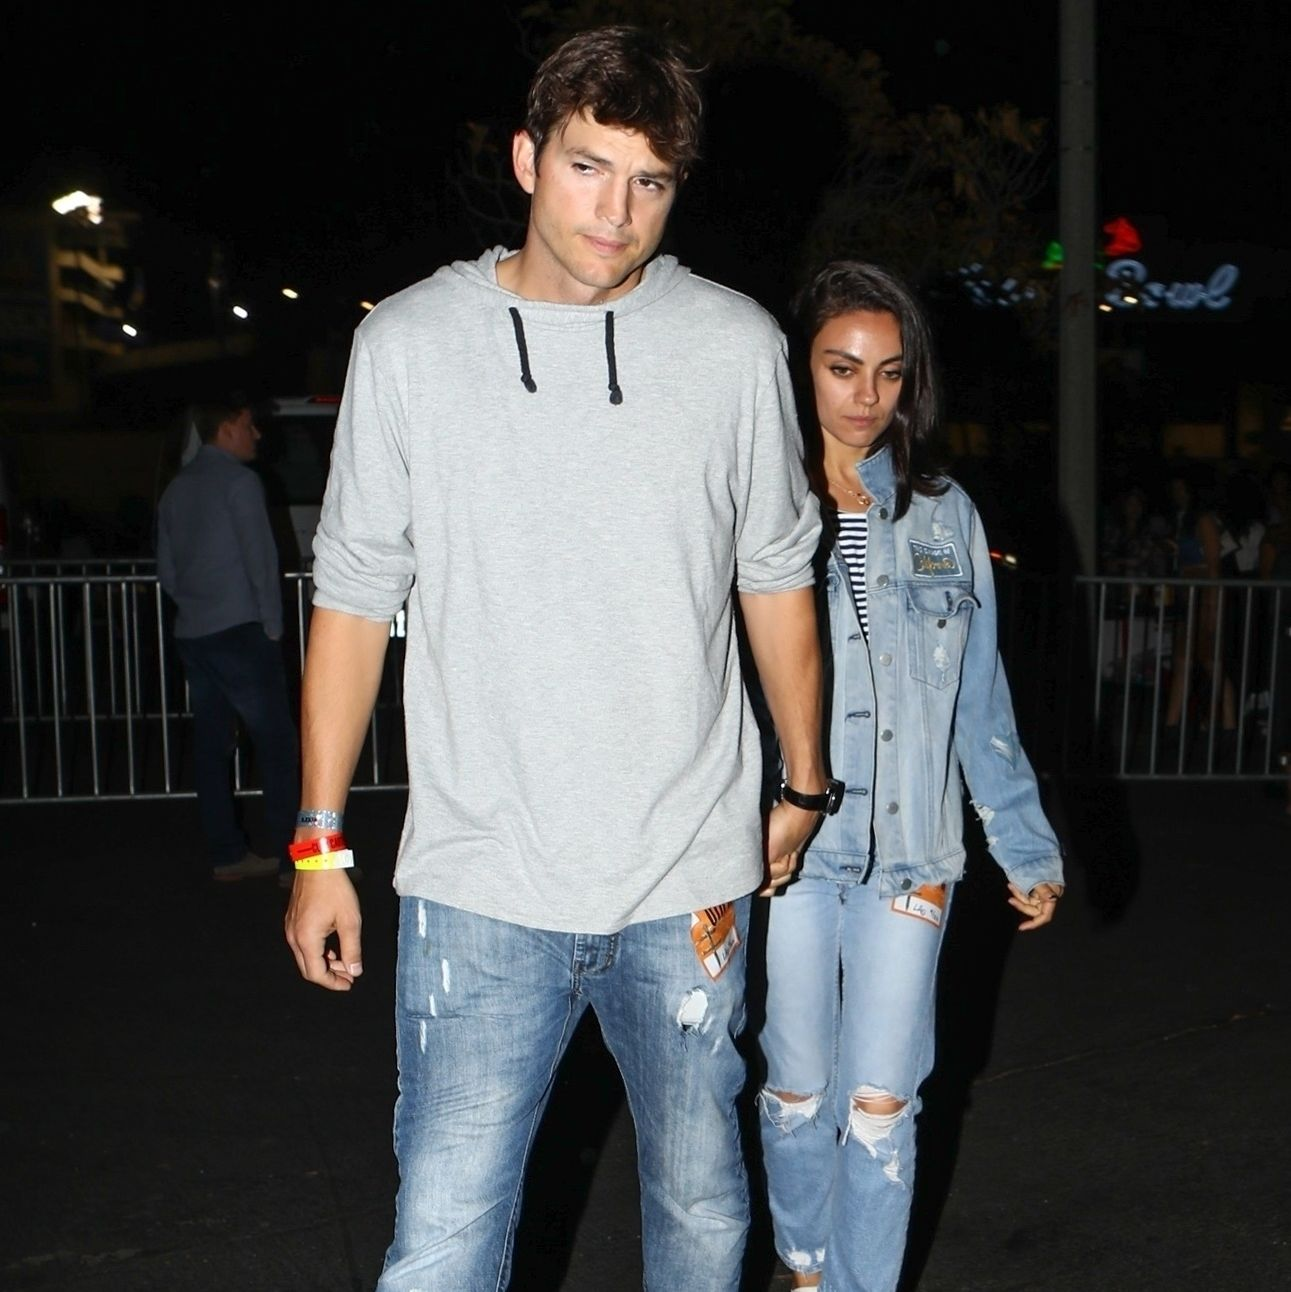 Brittany and justin were dating and matching their denim outfits